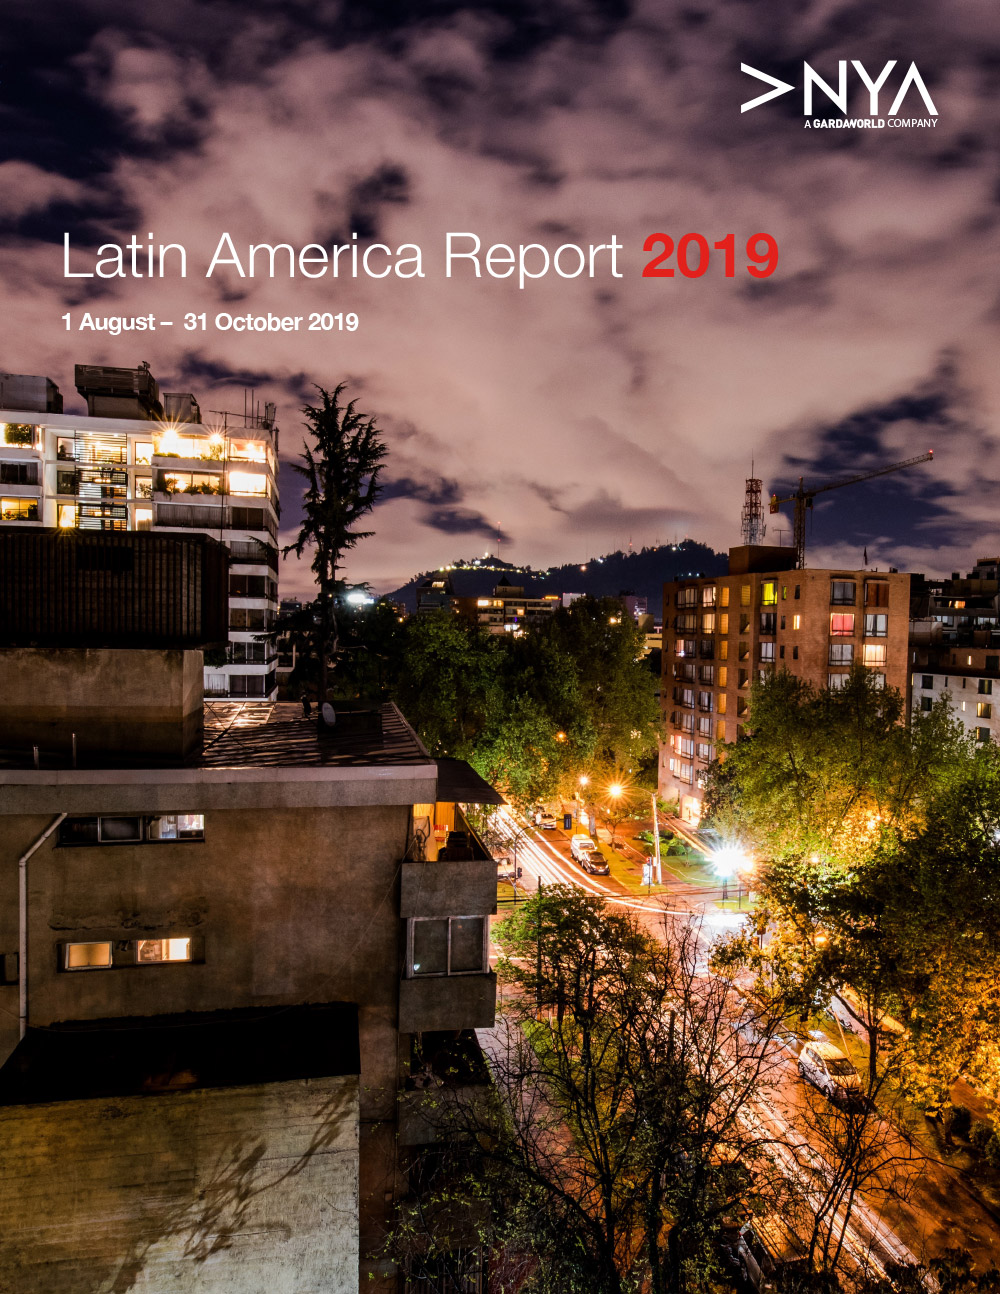 Risk Latin America Report Q4 2019